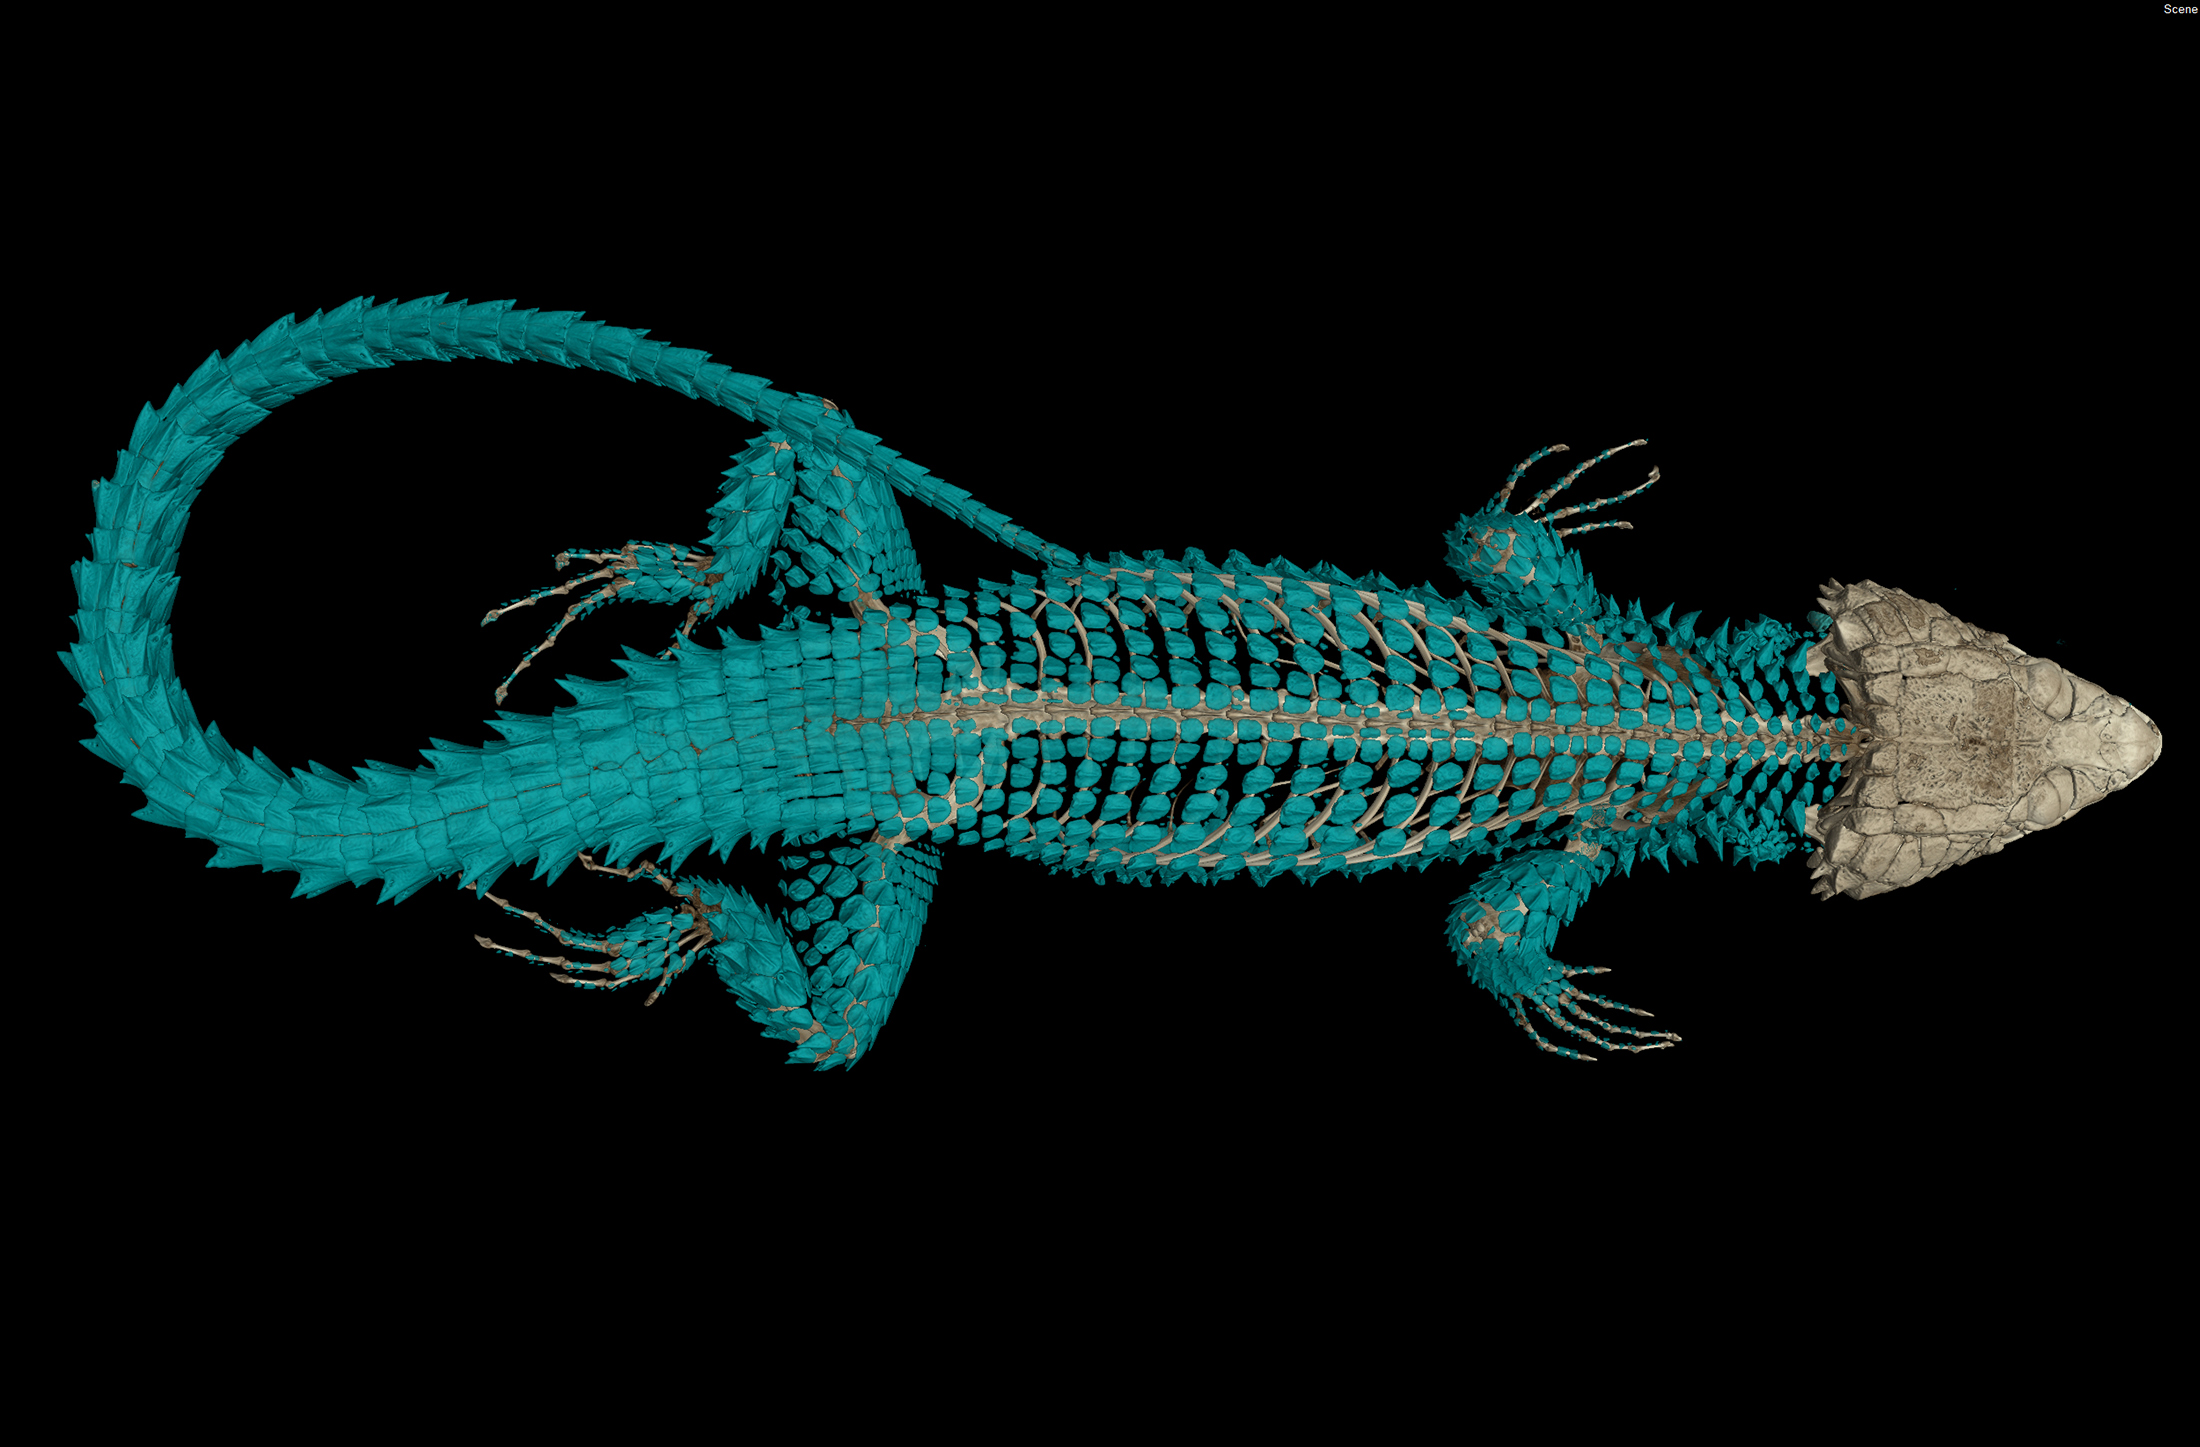 CT scan of a girdled lizard